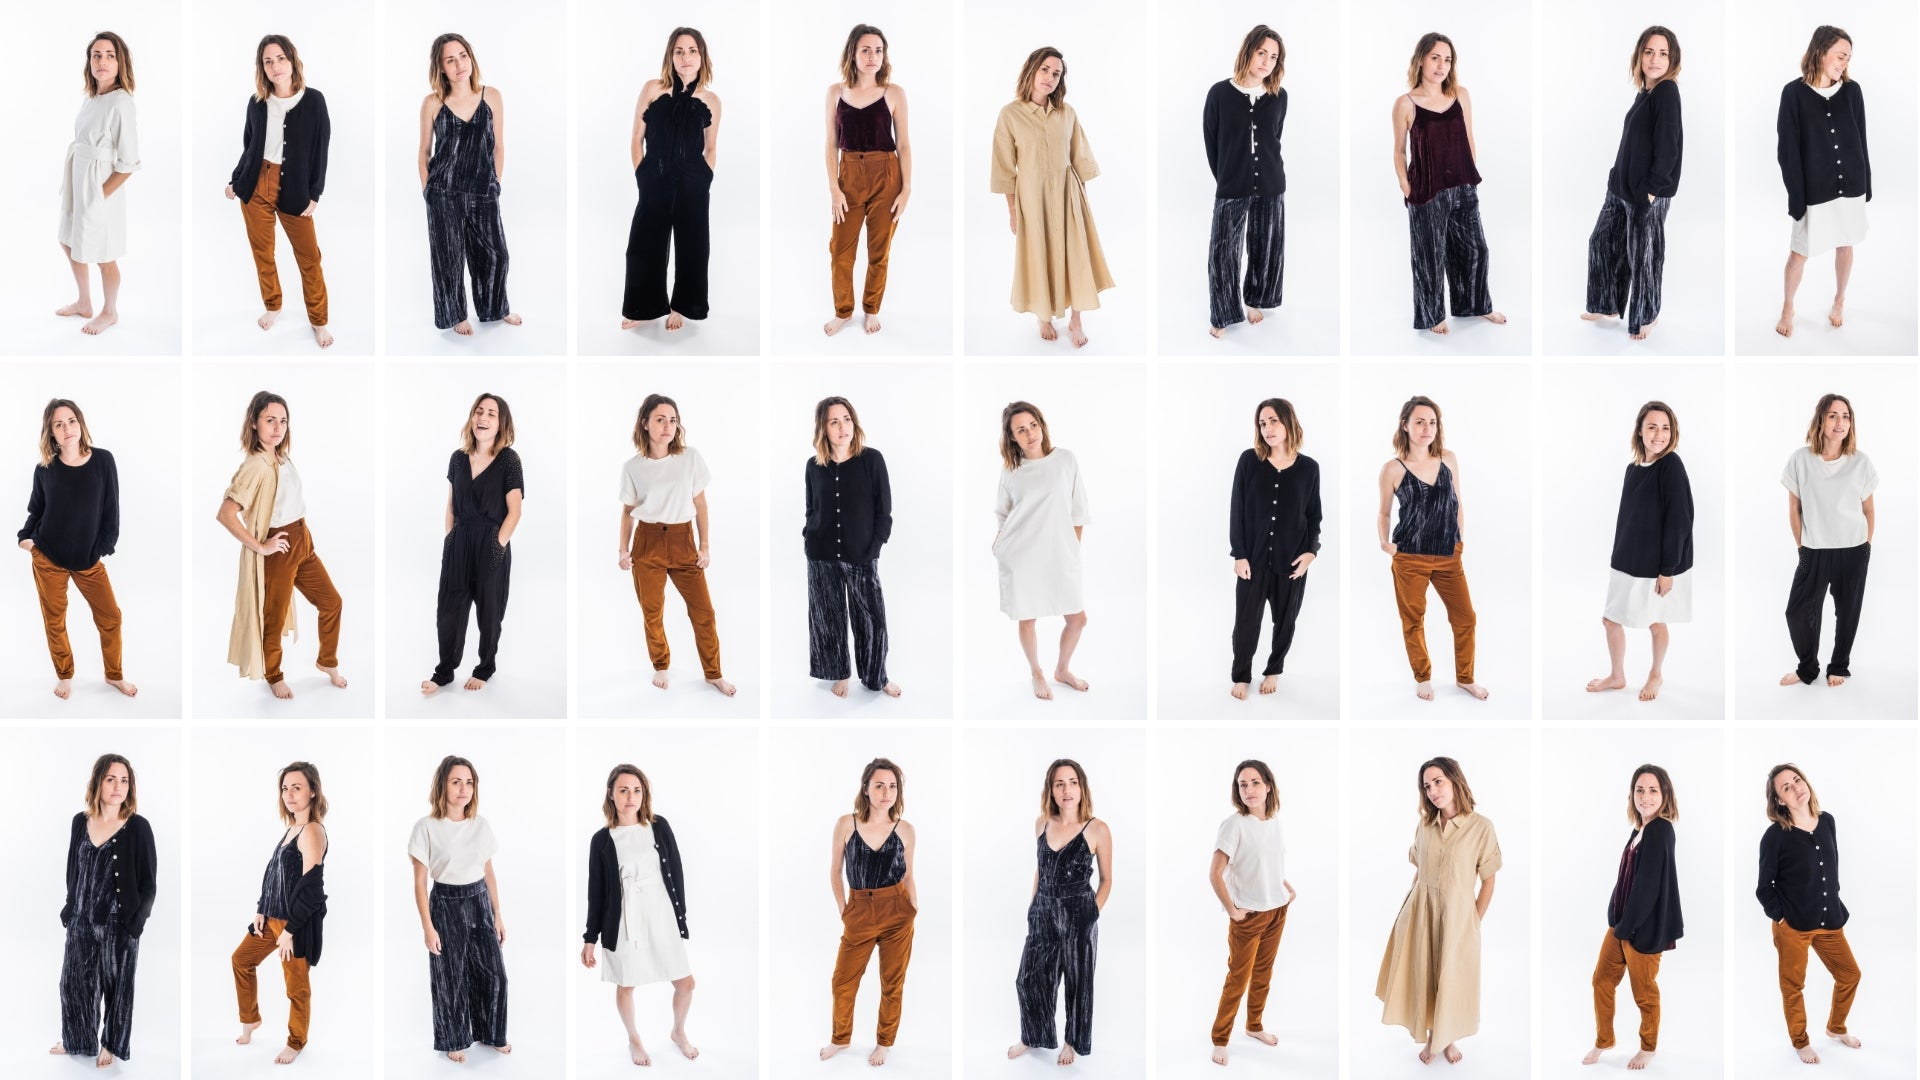 Shop the pre-made Festive Capsule wardrobe, perfect for a minimalist Holiday.